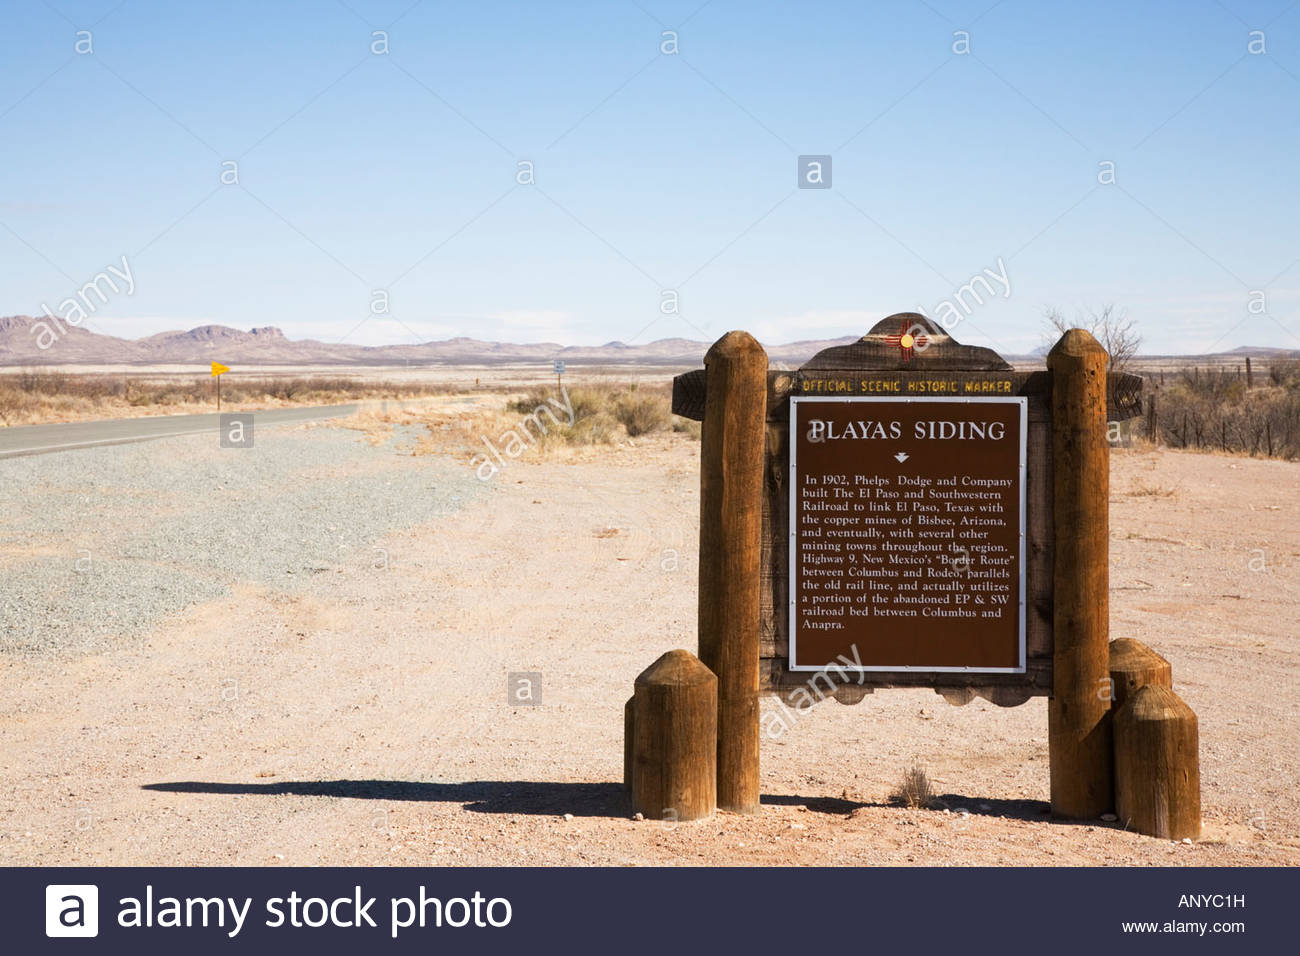 Playas Siding Historical Marker along New Mexico Border Route Highway 9 - Stock Image